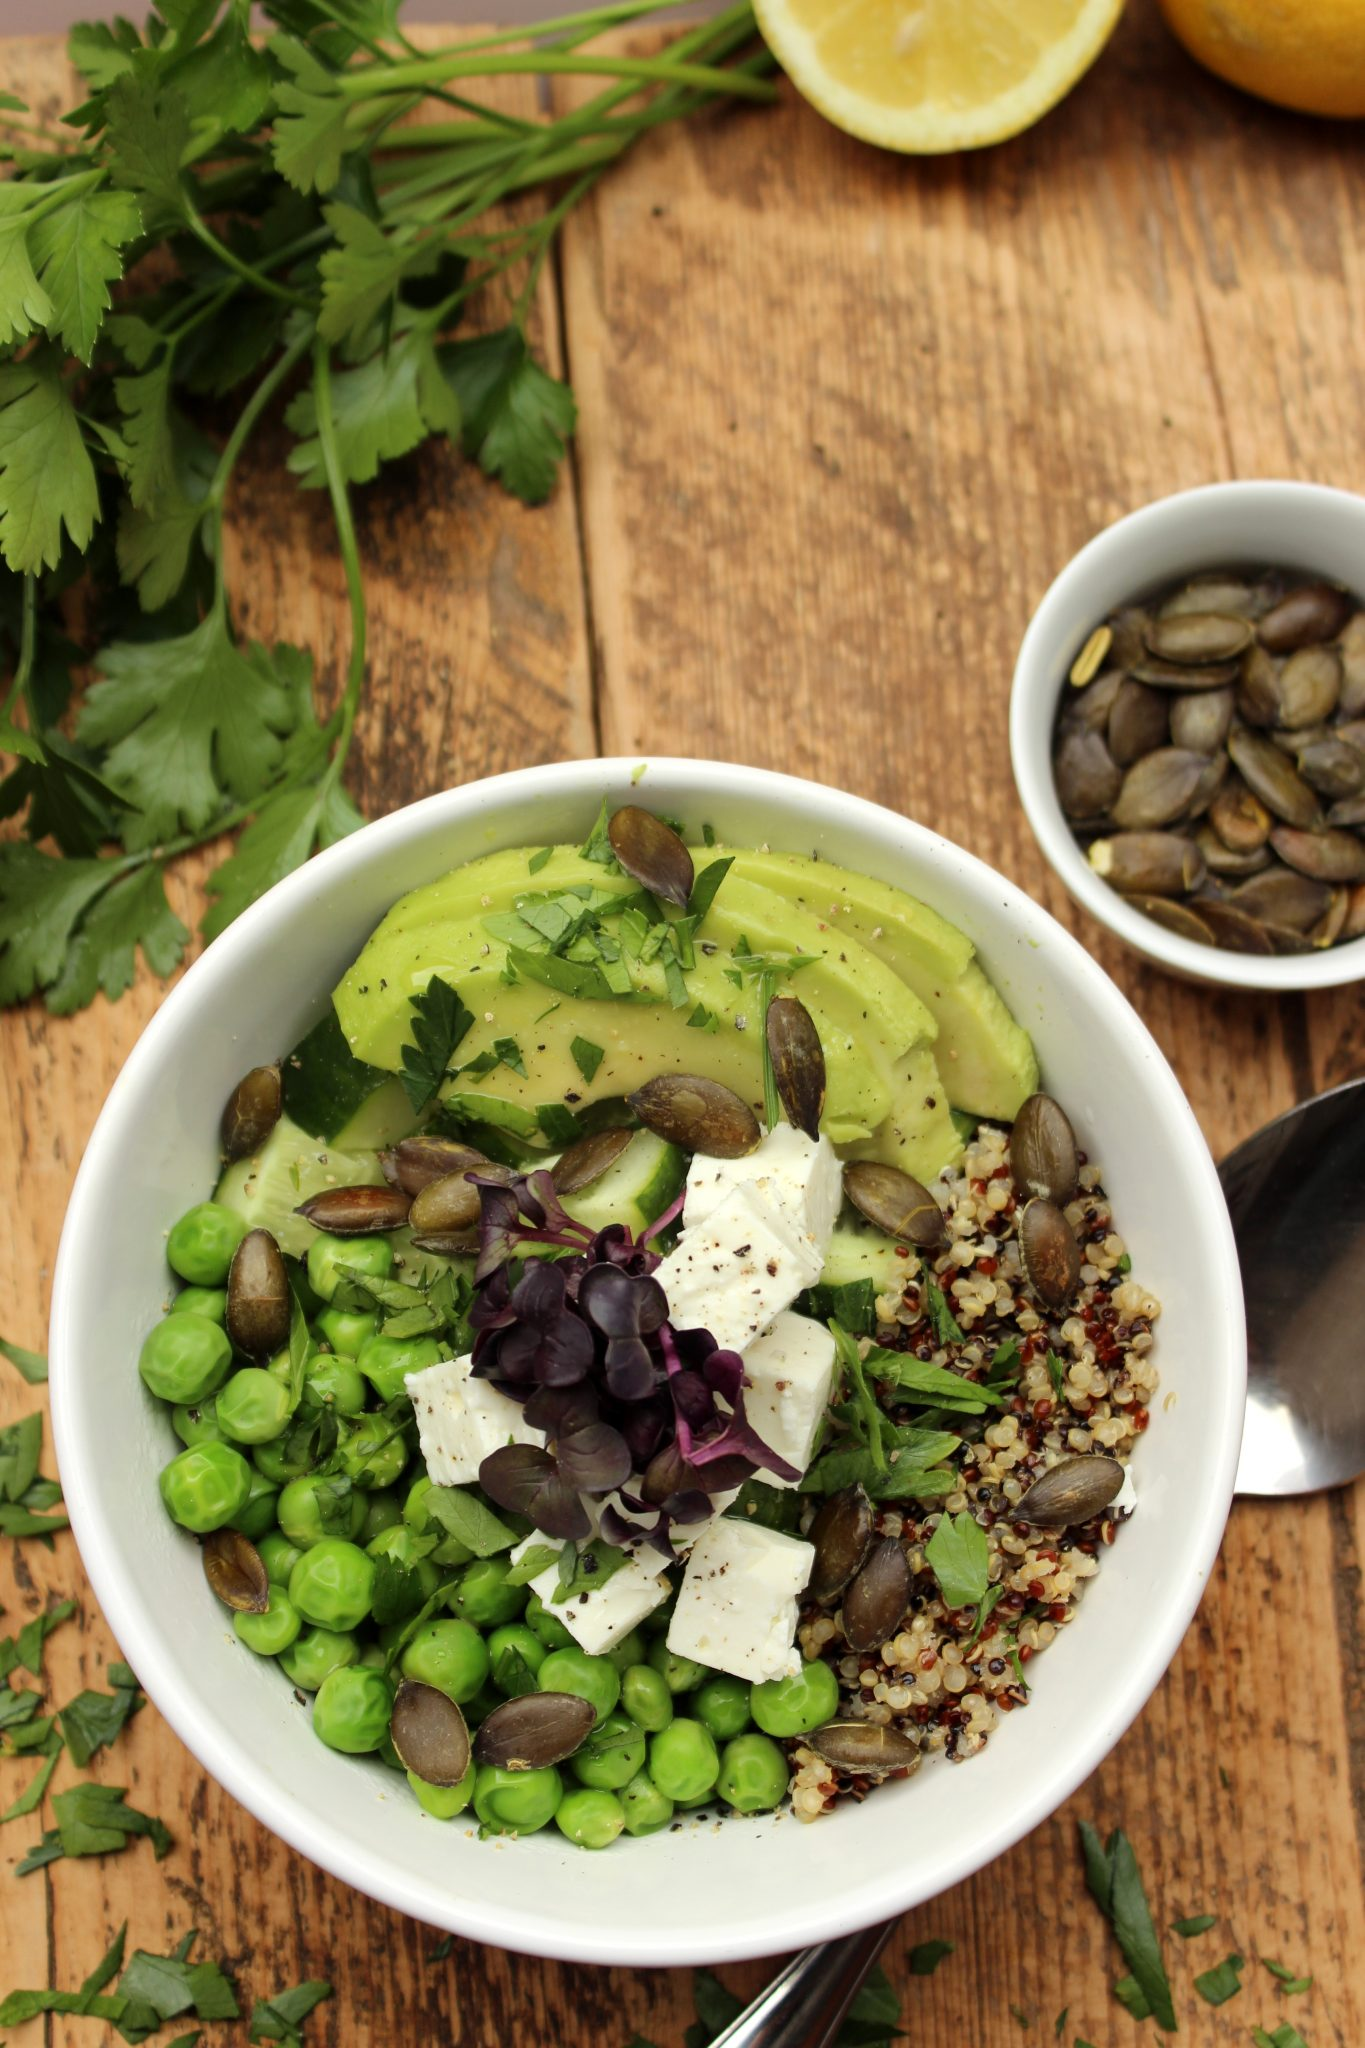 Erbsen-Gurken-Avocado-Bowl